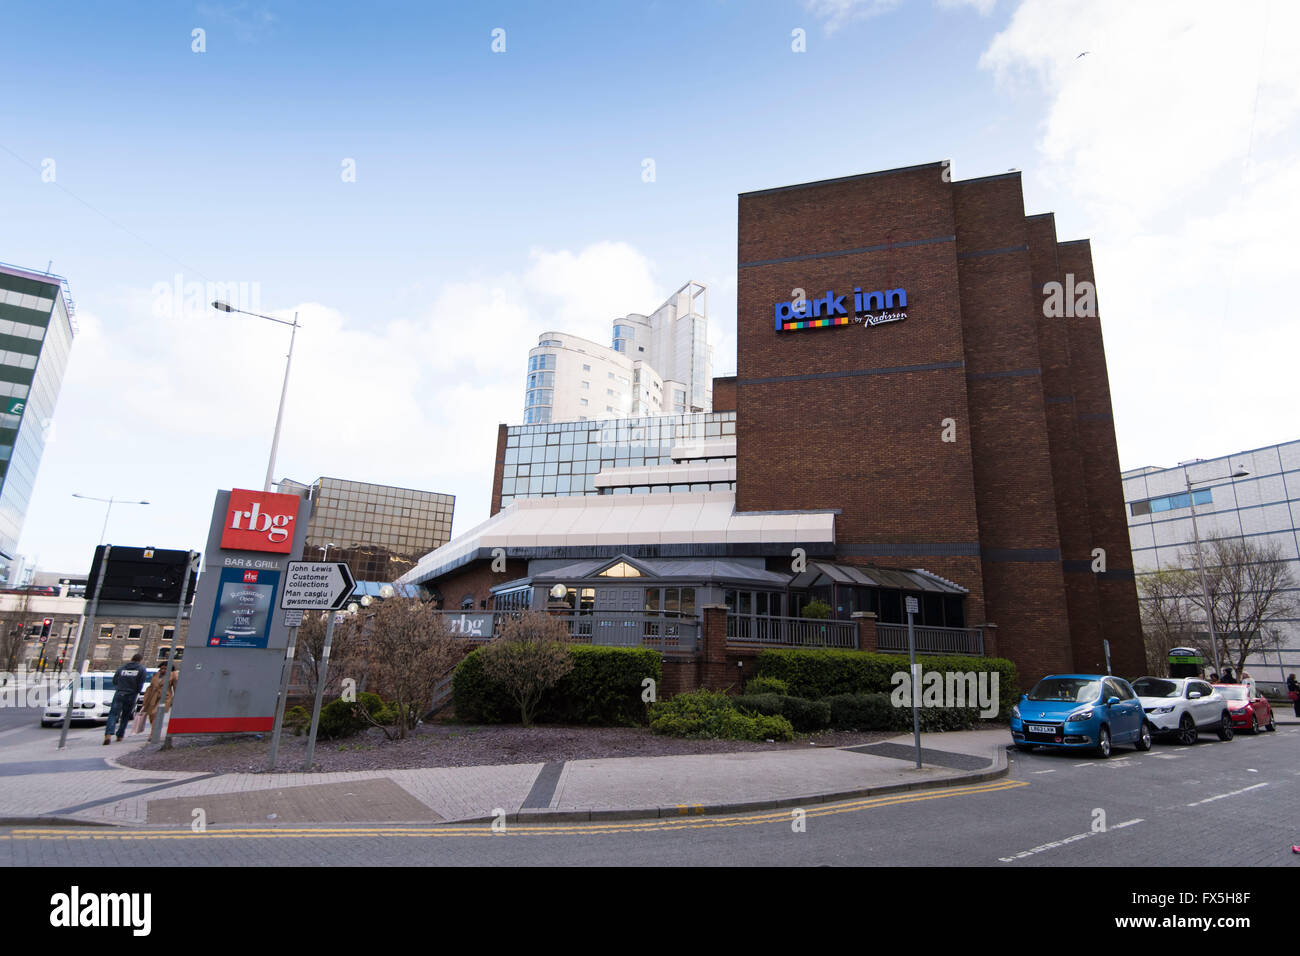 Park Inn by Radisson hotel on Mary Ann St, Cardiff, south Wales. - Stock Image